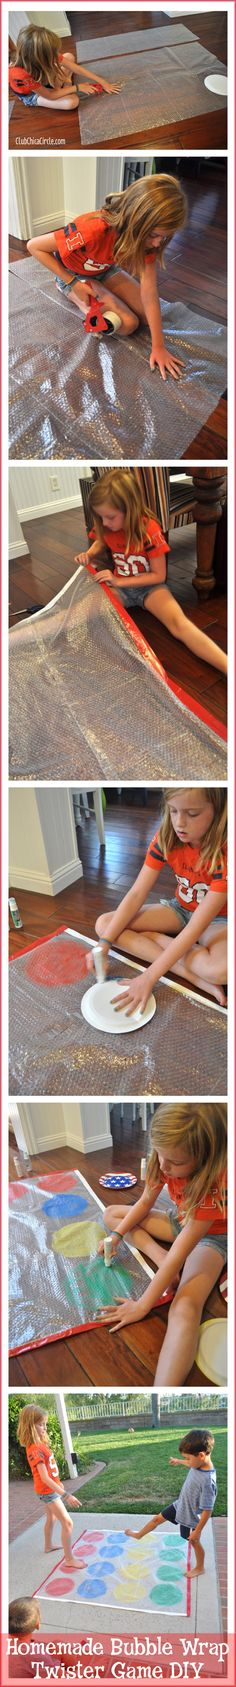 Homemade Bubble Wrap Twister Game DIY - fun weekend craft idea for kids